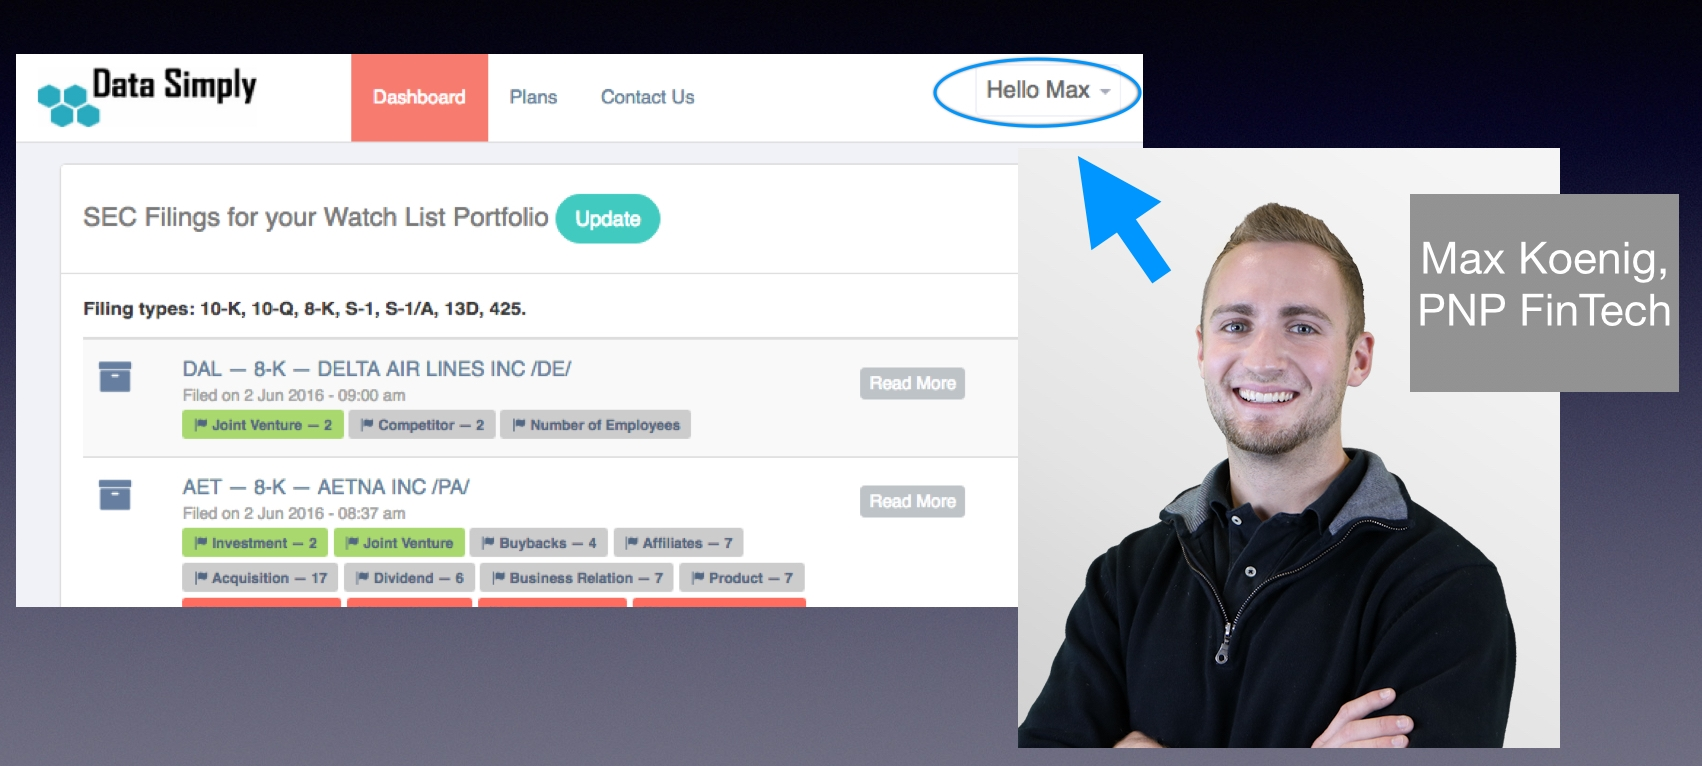 Little known fact ... we named our demo user after Max on the PNP team!